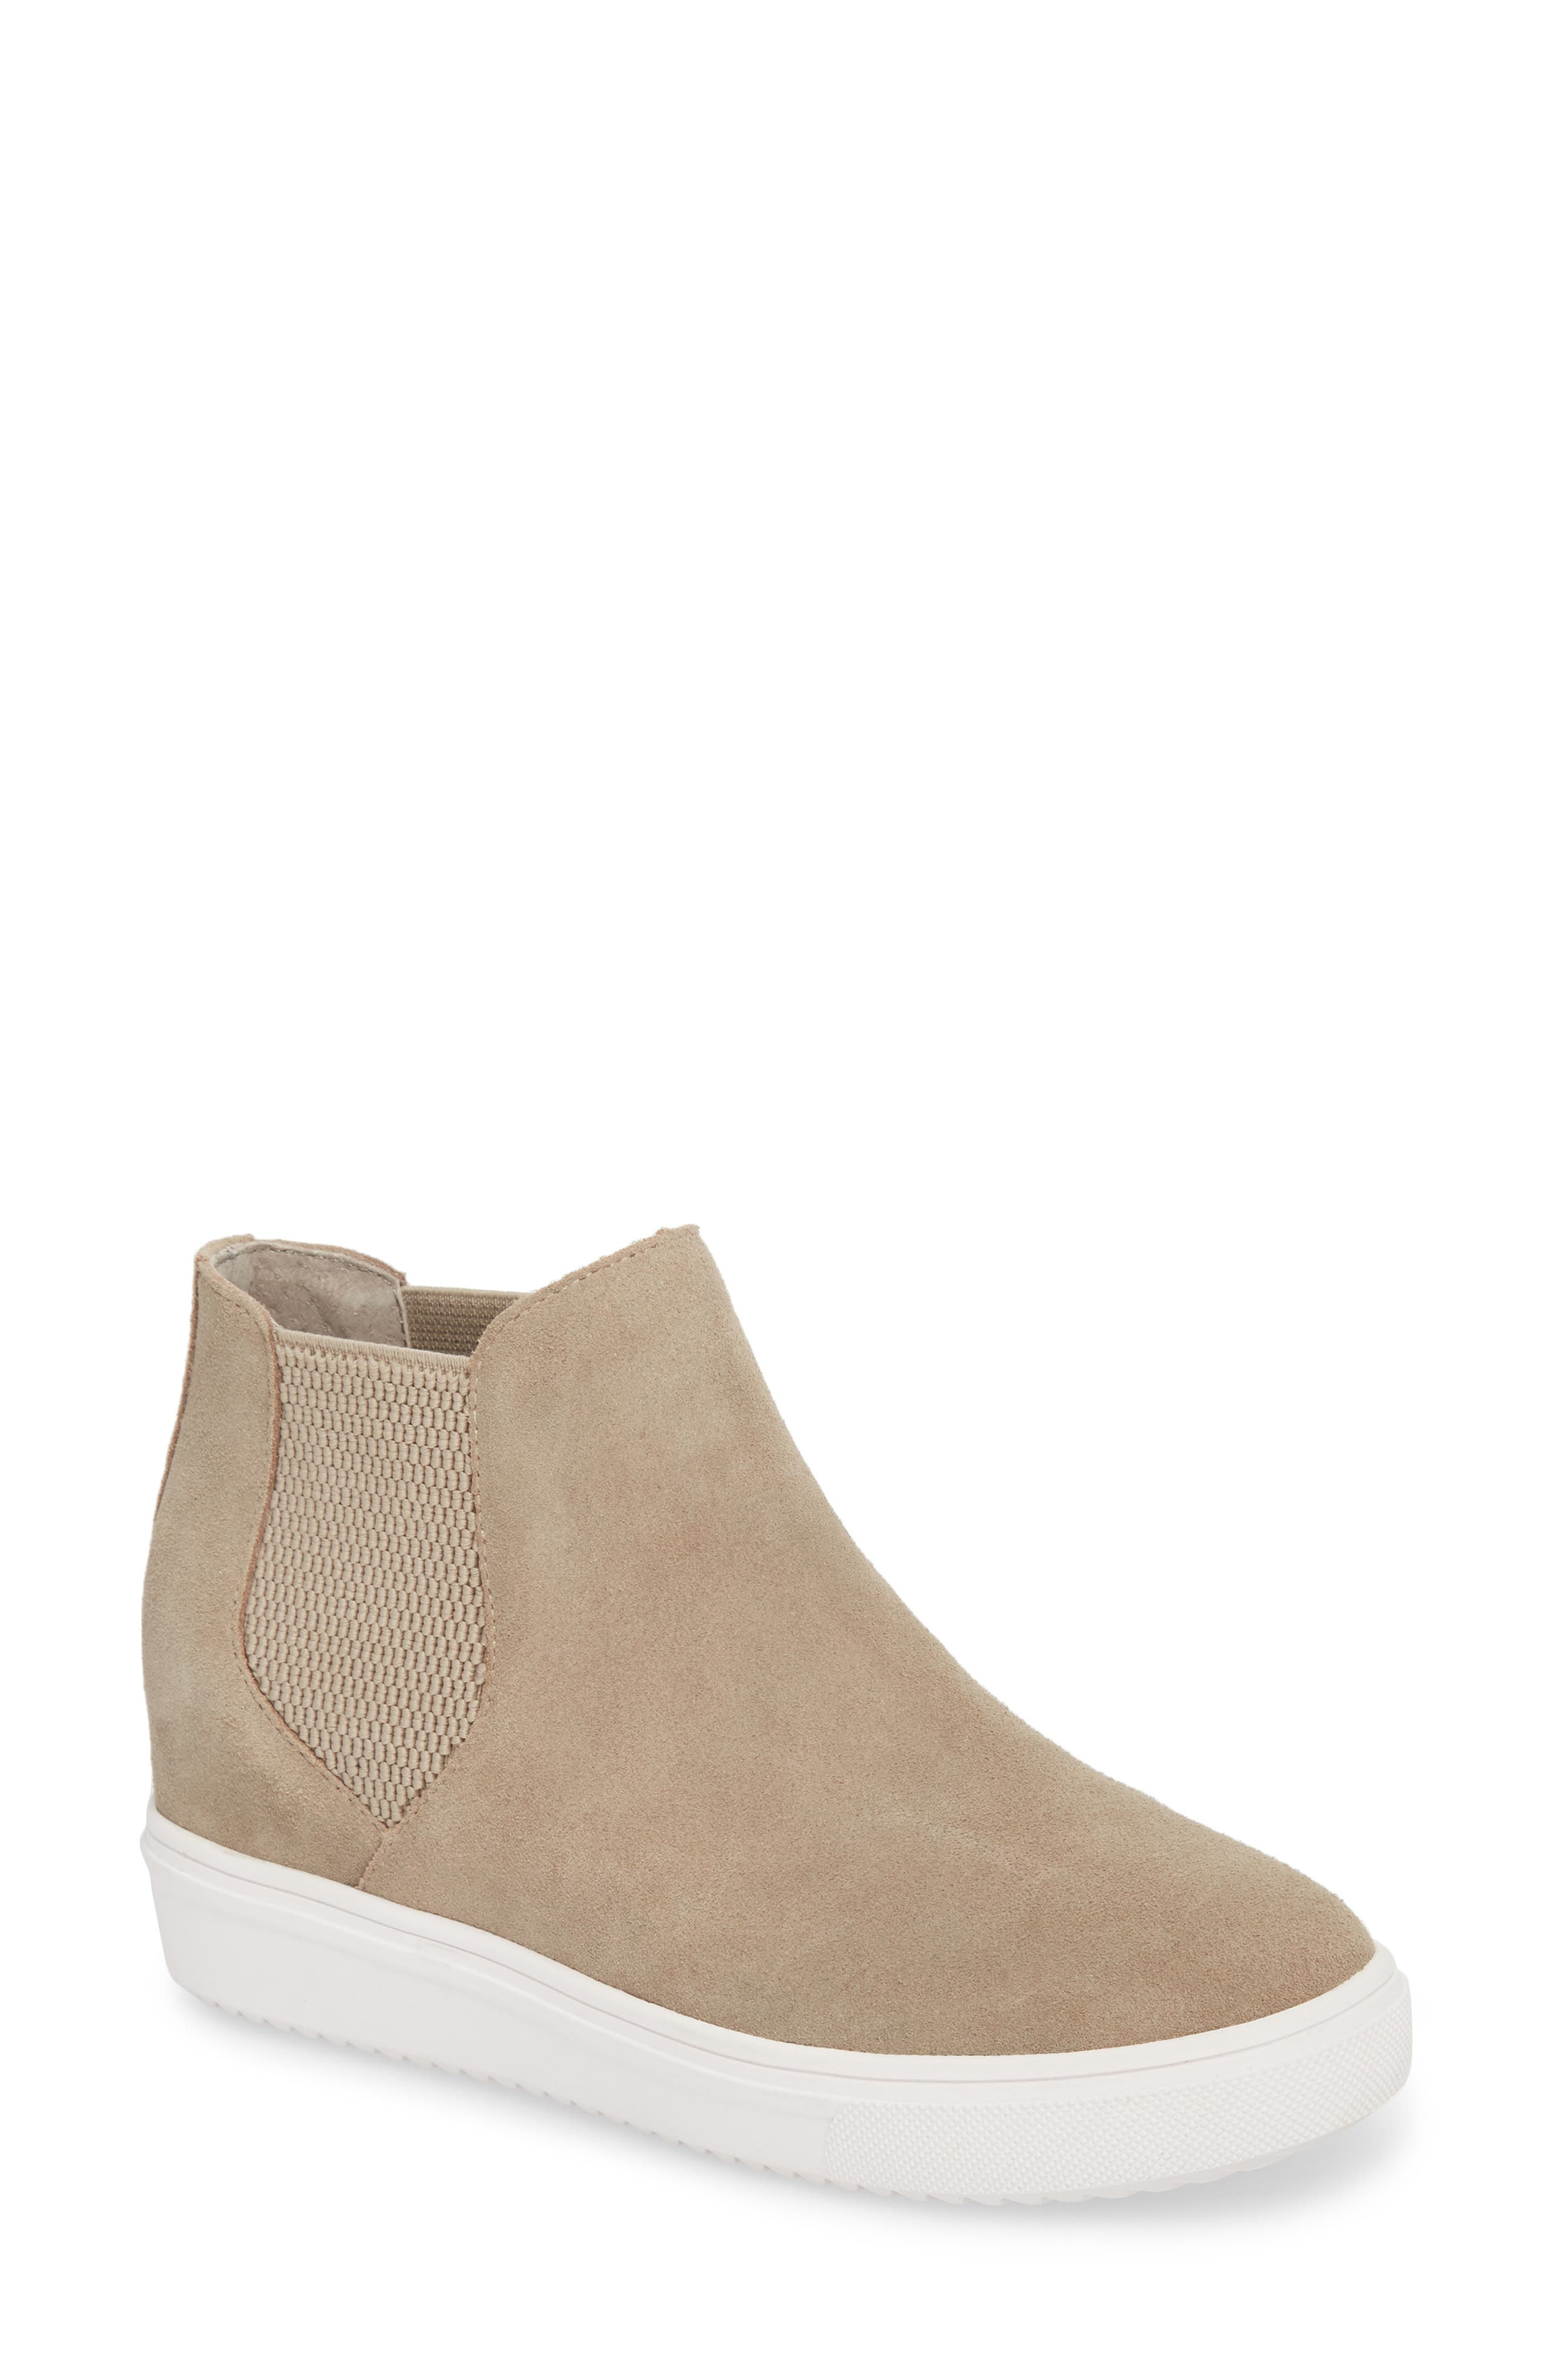 Sultan Chelsea Wedge Sneaker,                         Main,                         color, TAUPE SUEDE